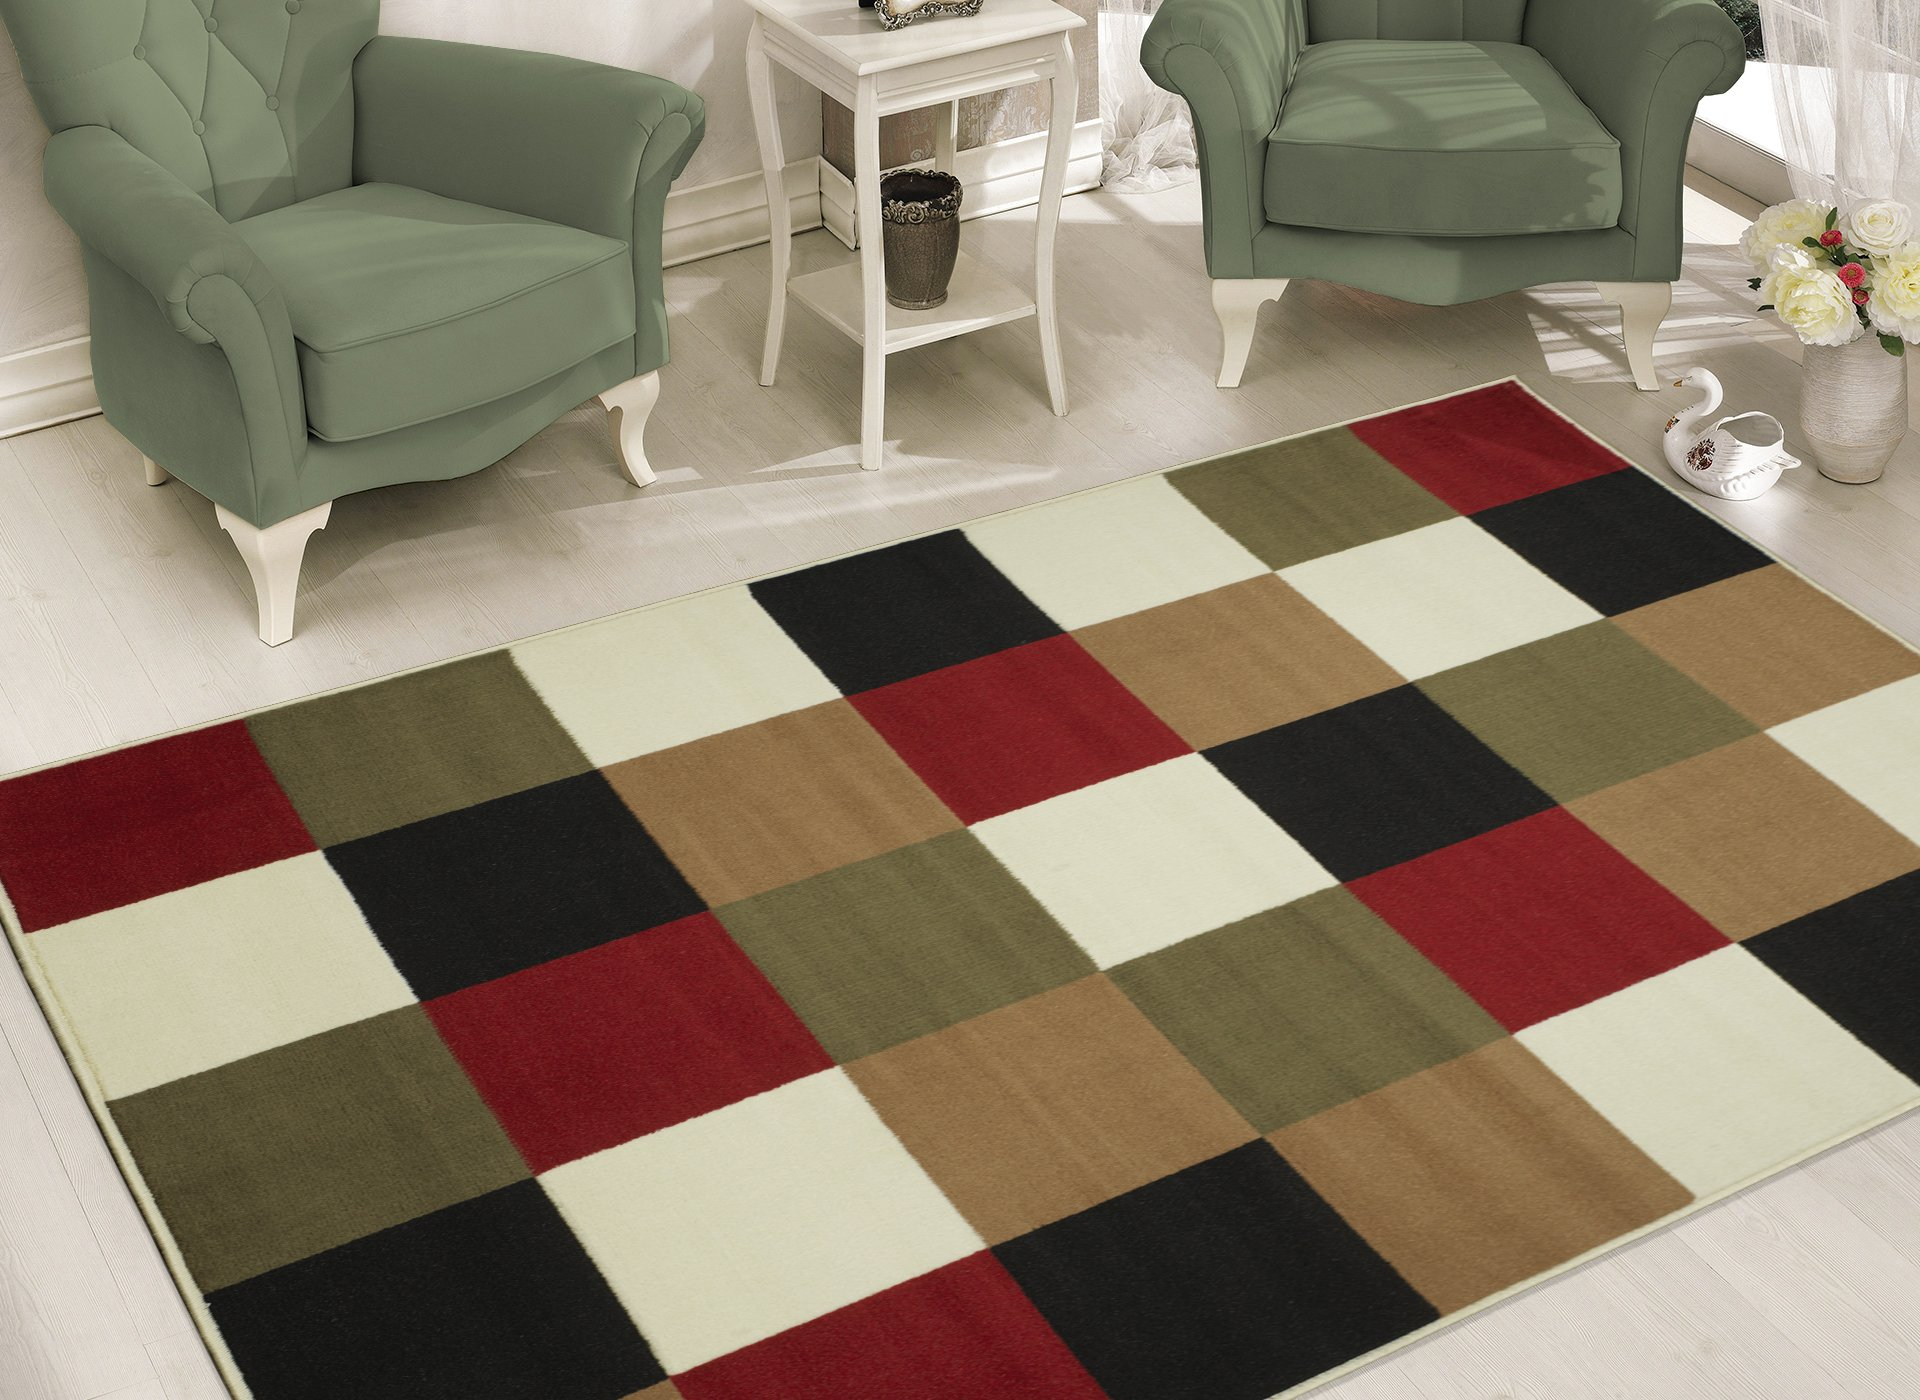 Sweet Home Stores BCF1639-5X7 Boxes Design Area Rug, 5'3'' x 7', Multicolor